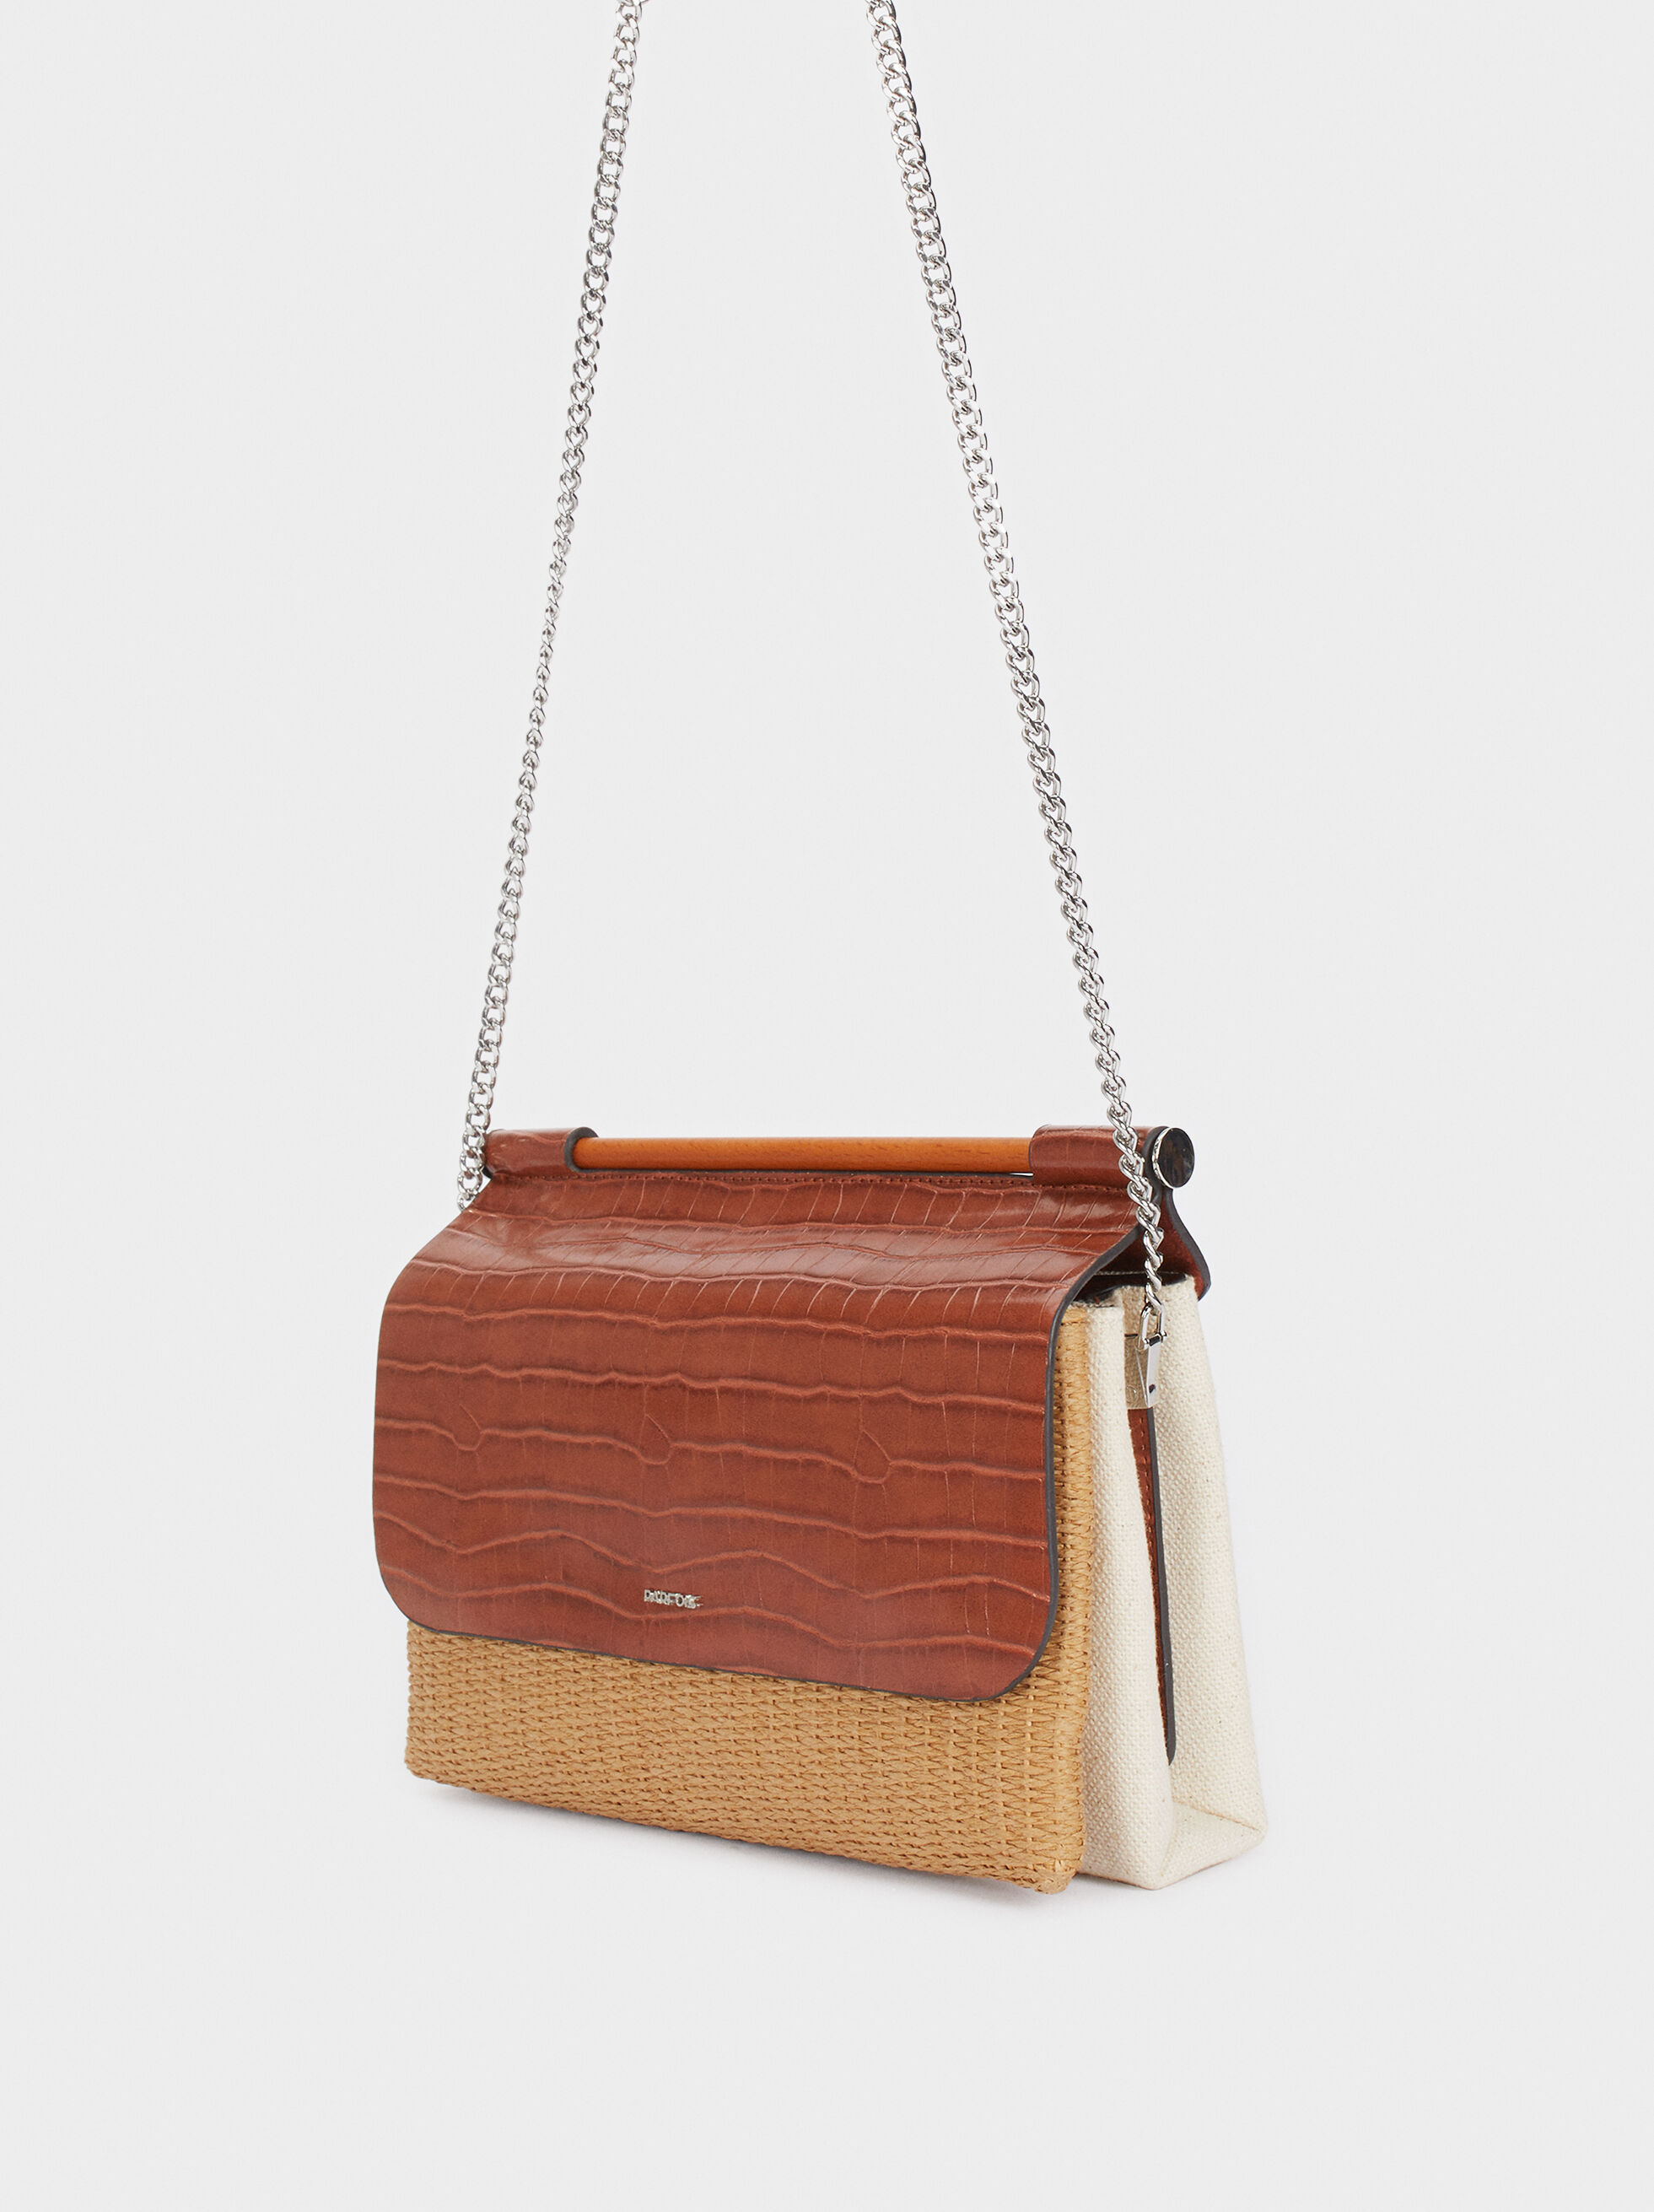 Contrast Crossbody Bag With Chain Strap, Camel, hi-res